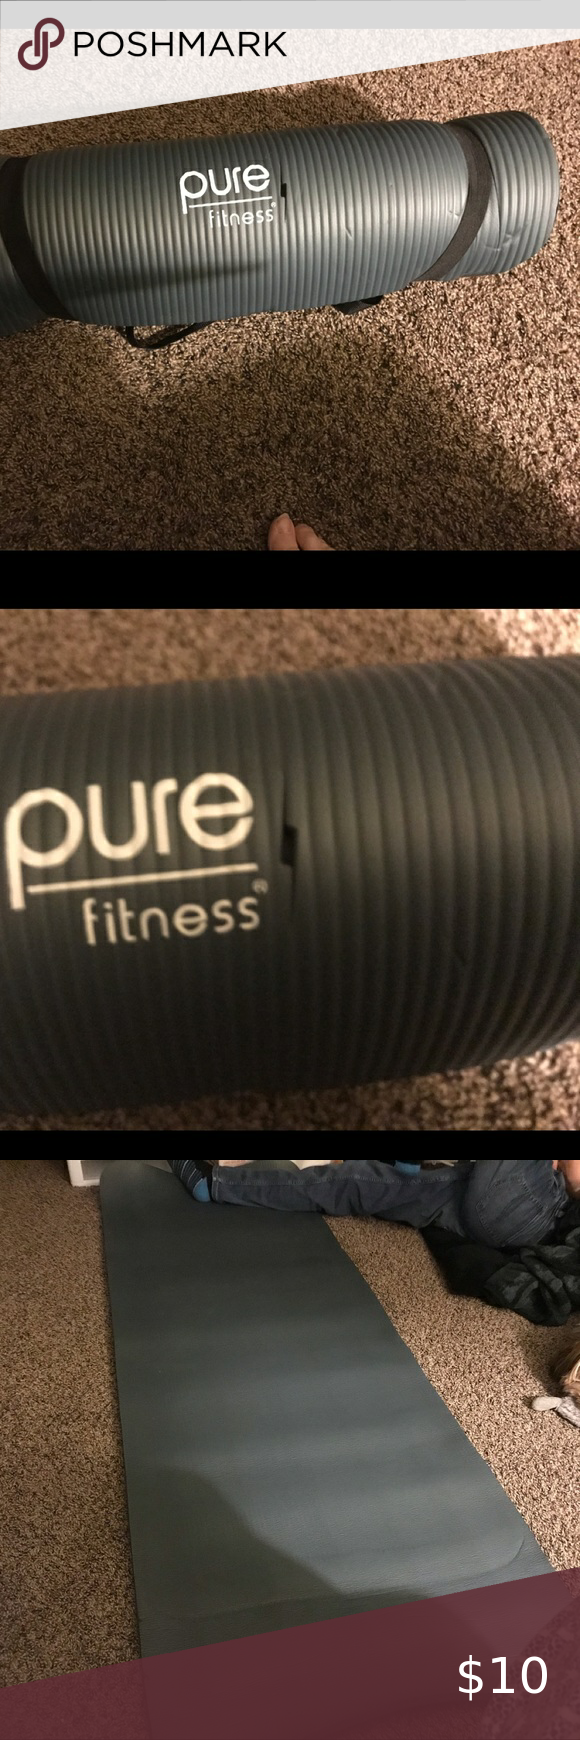 Pure Fitness Yoga Pad Yoga pad was never used, just stored